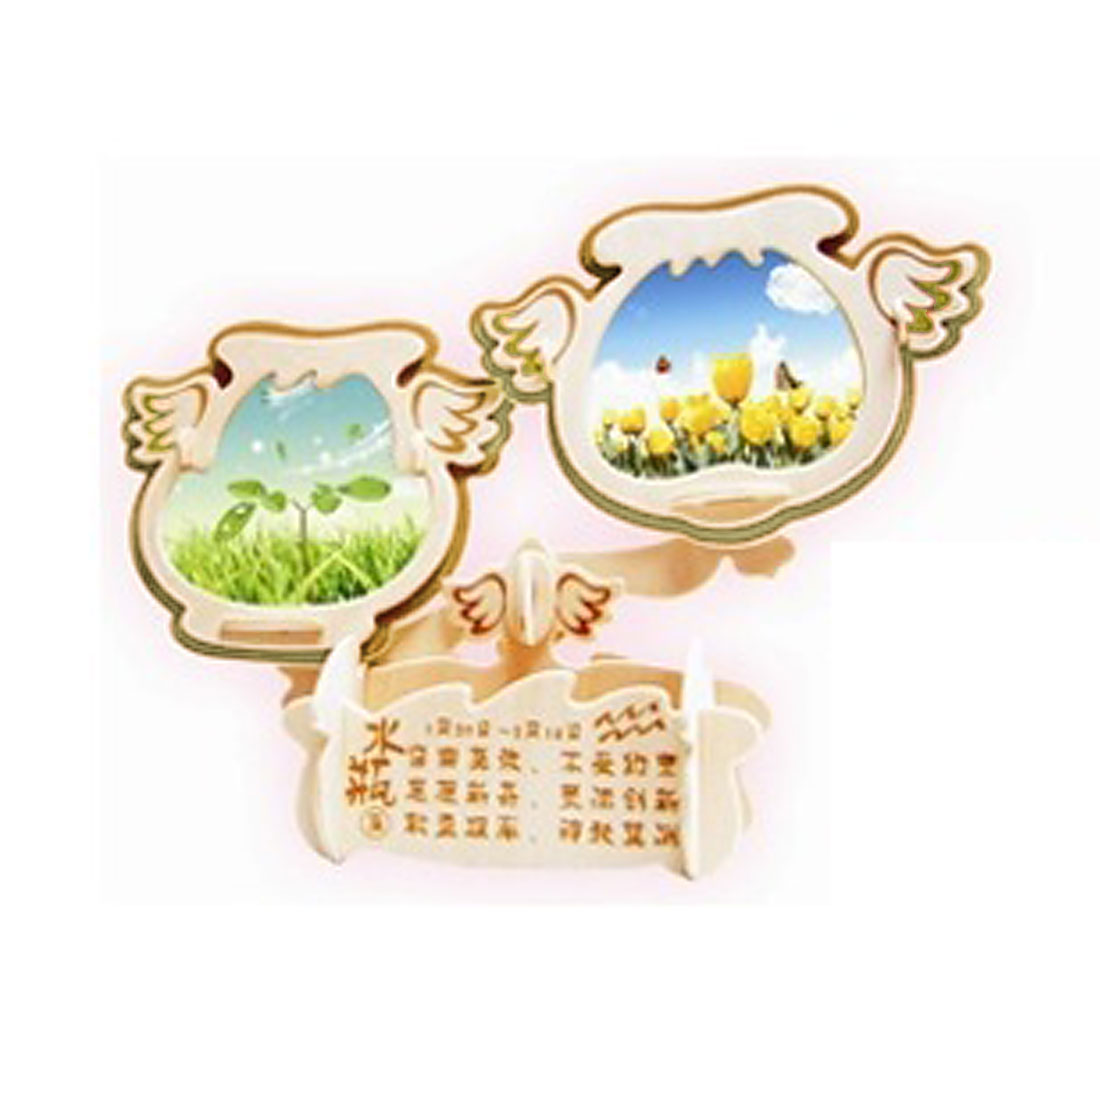 3D Aquaius Model Wooden DIY Assembly Puzzled Toy Gift Woodcraft Photo Frame